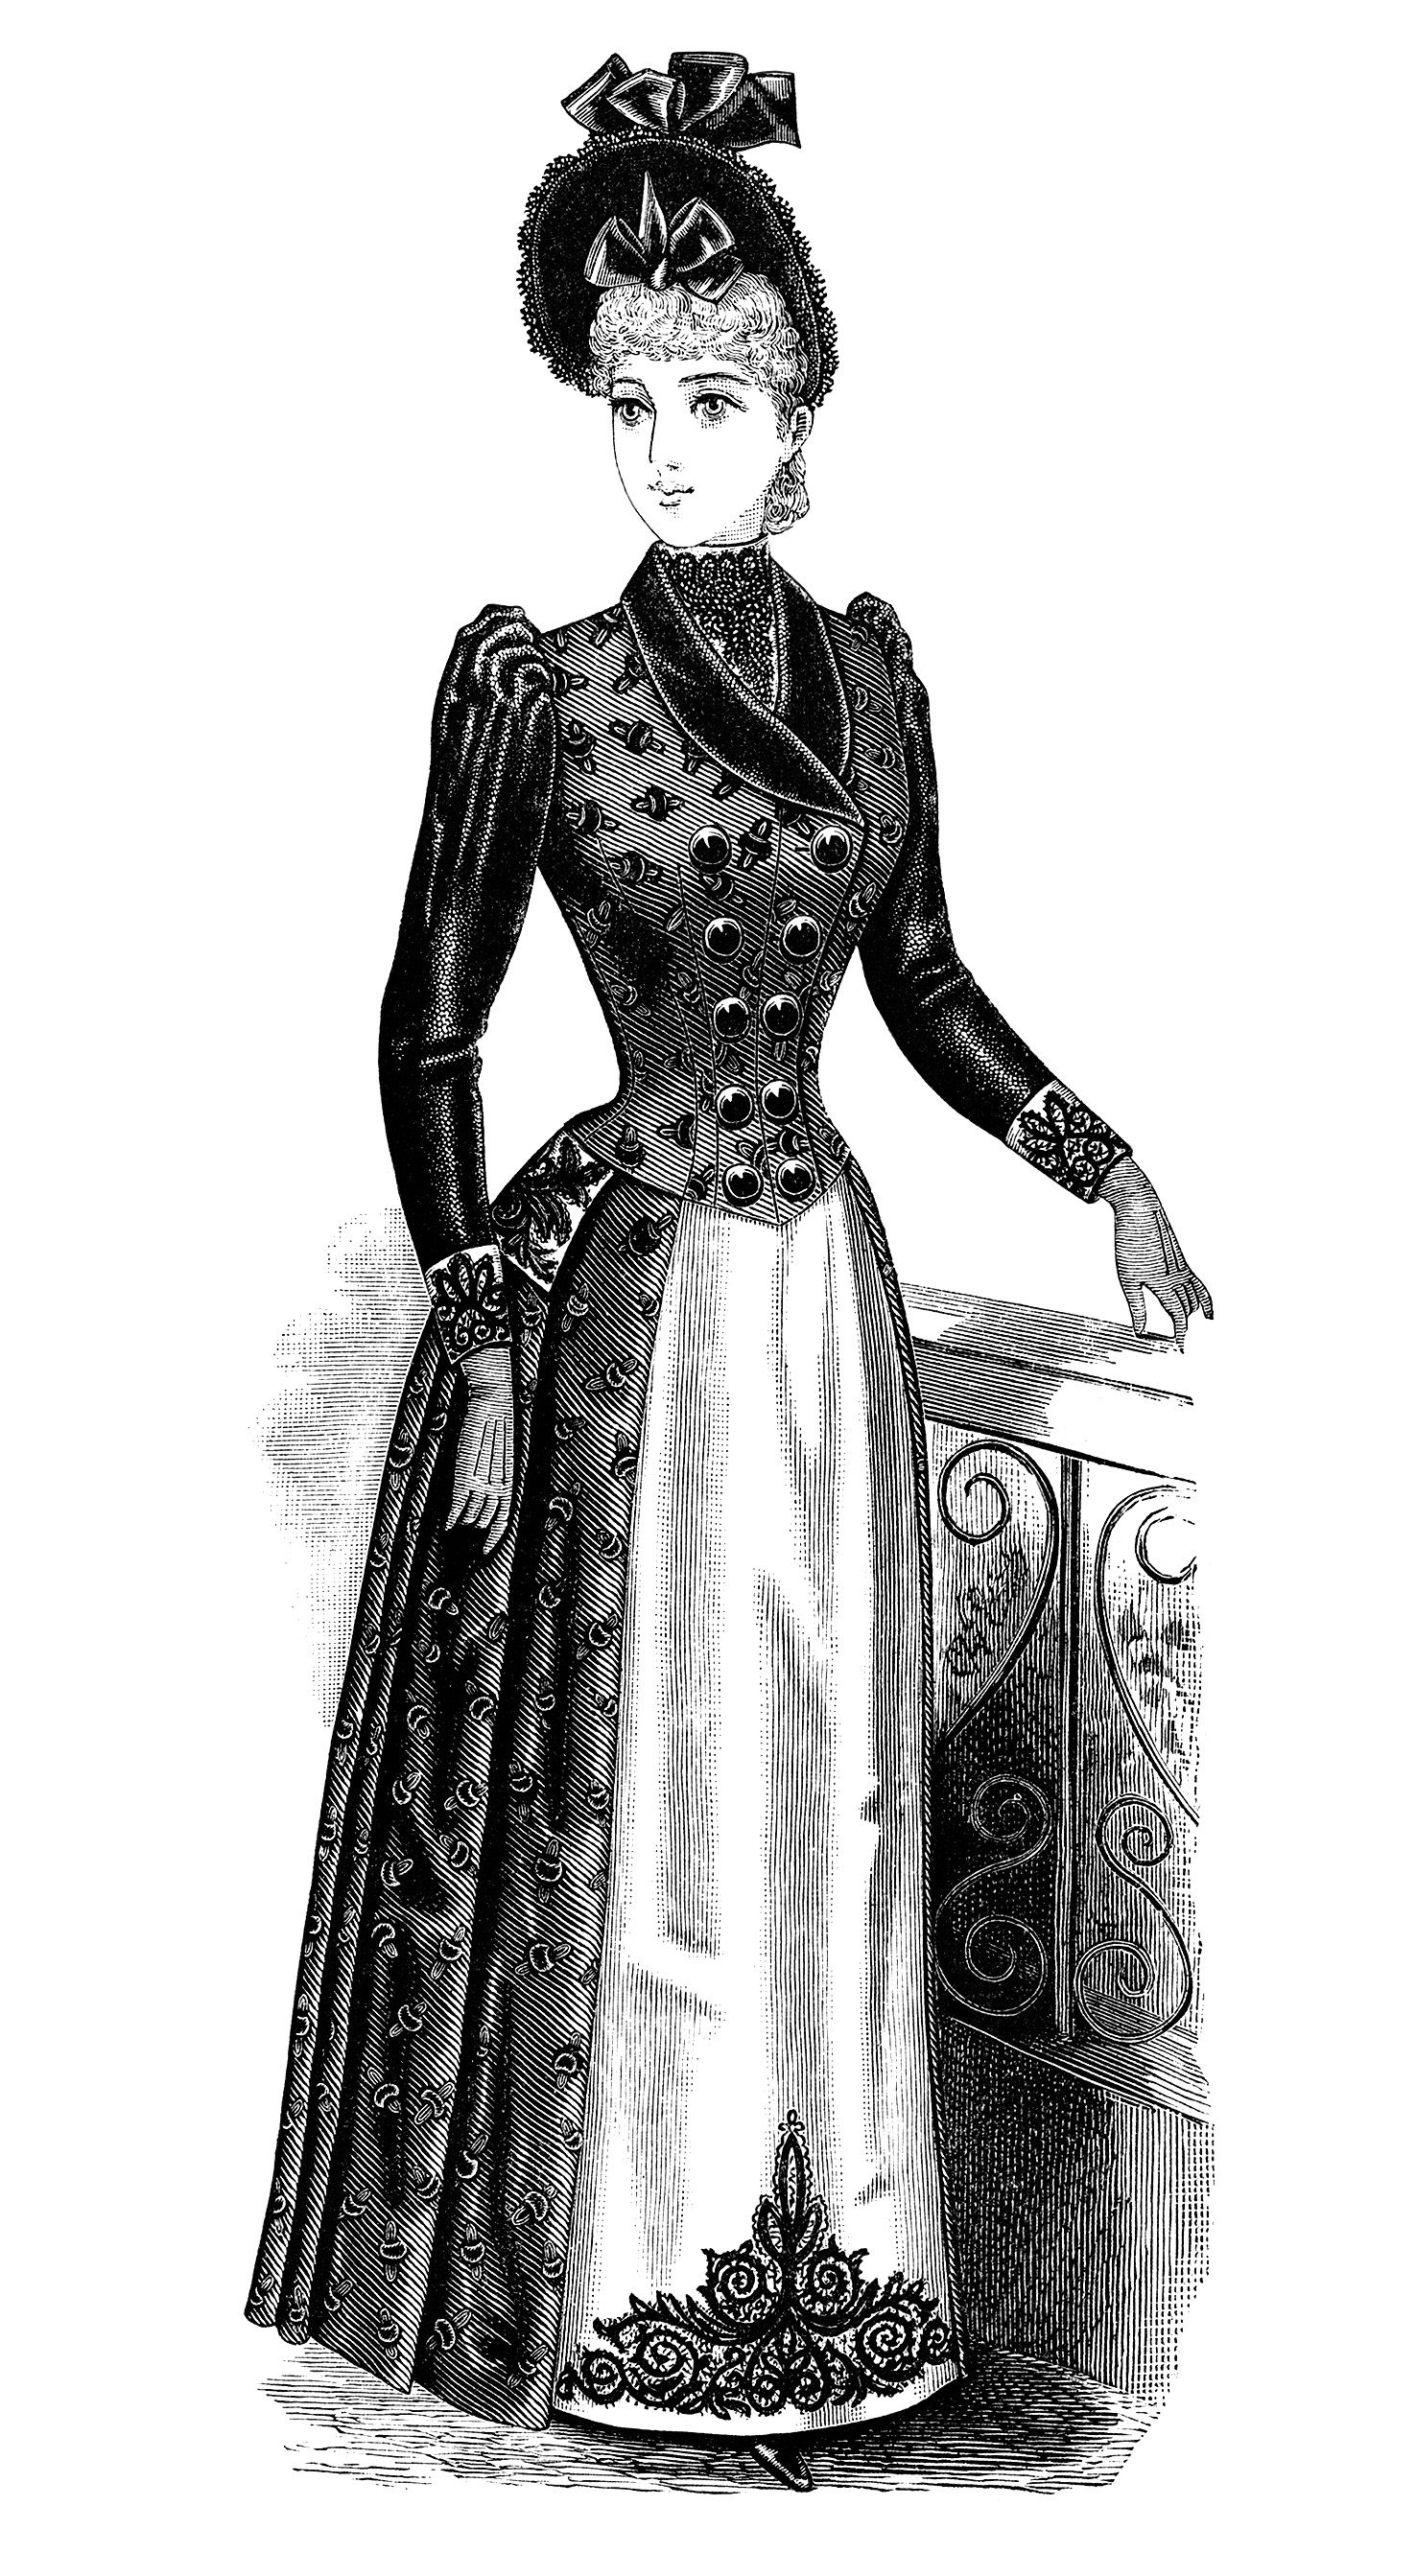 Victorian Lady Clipart Black And White Clip Art Free Vintage Fashion Image Antique Las Dress Ilration Women S Clothing 1900